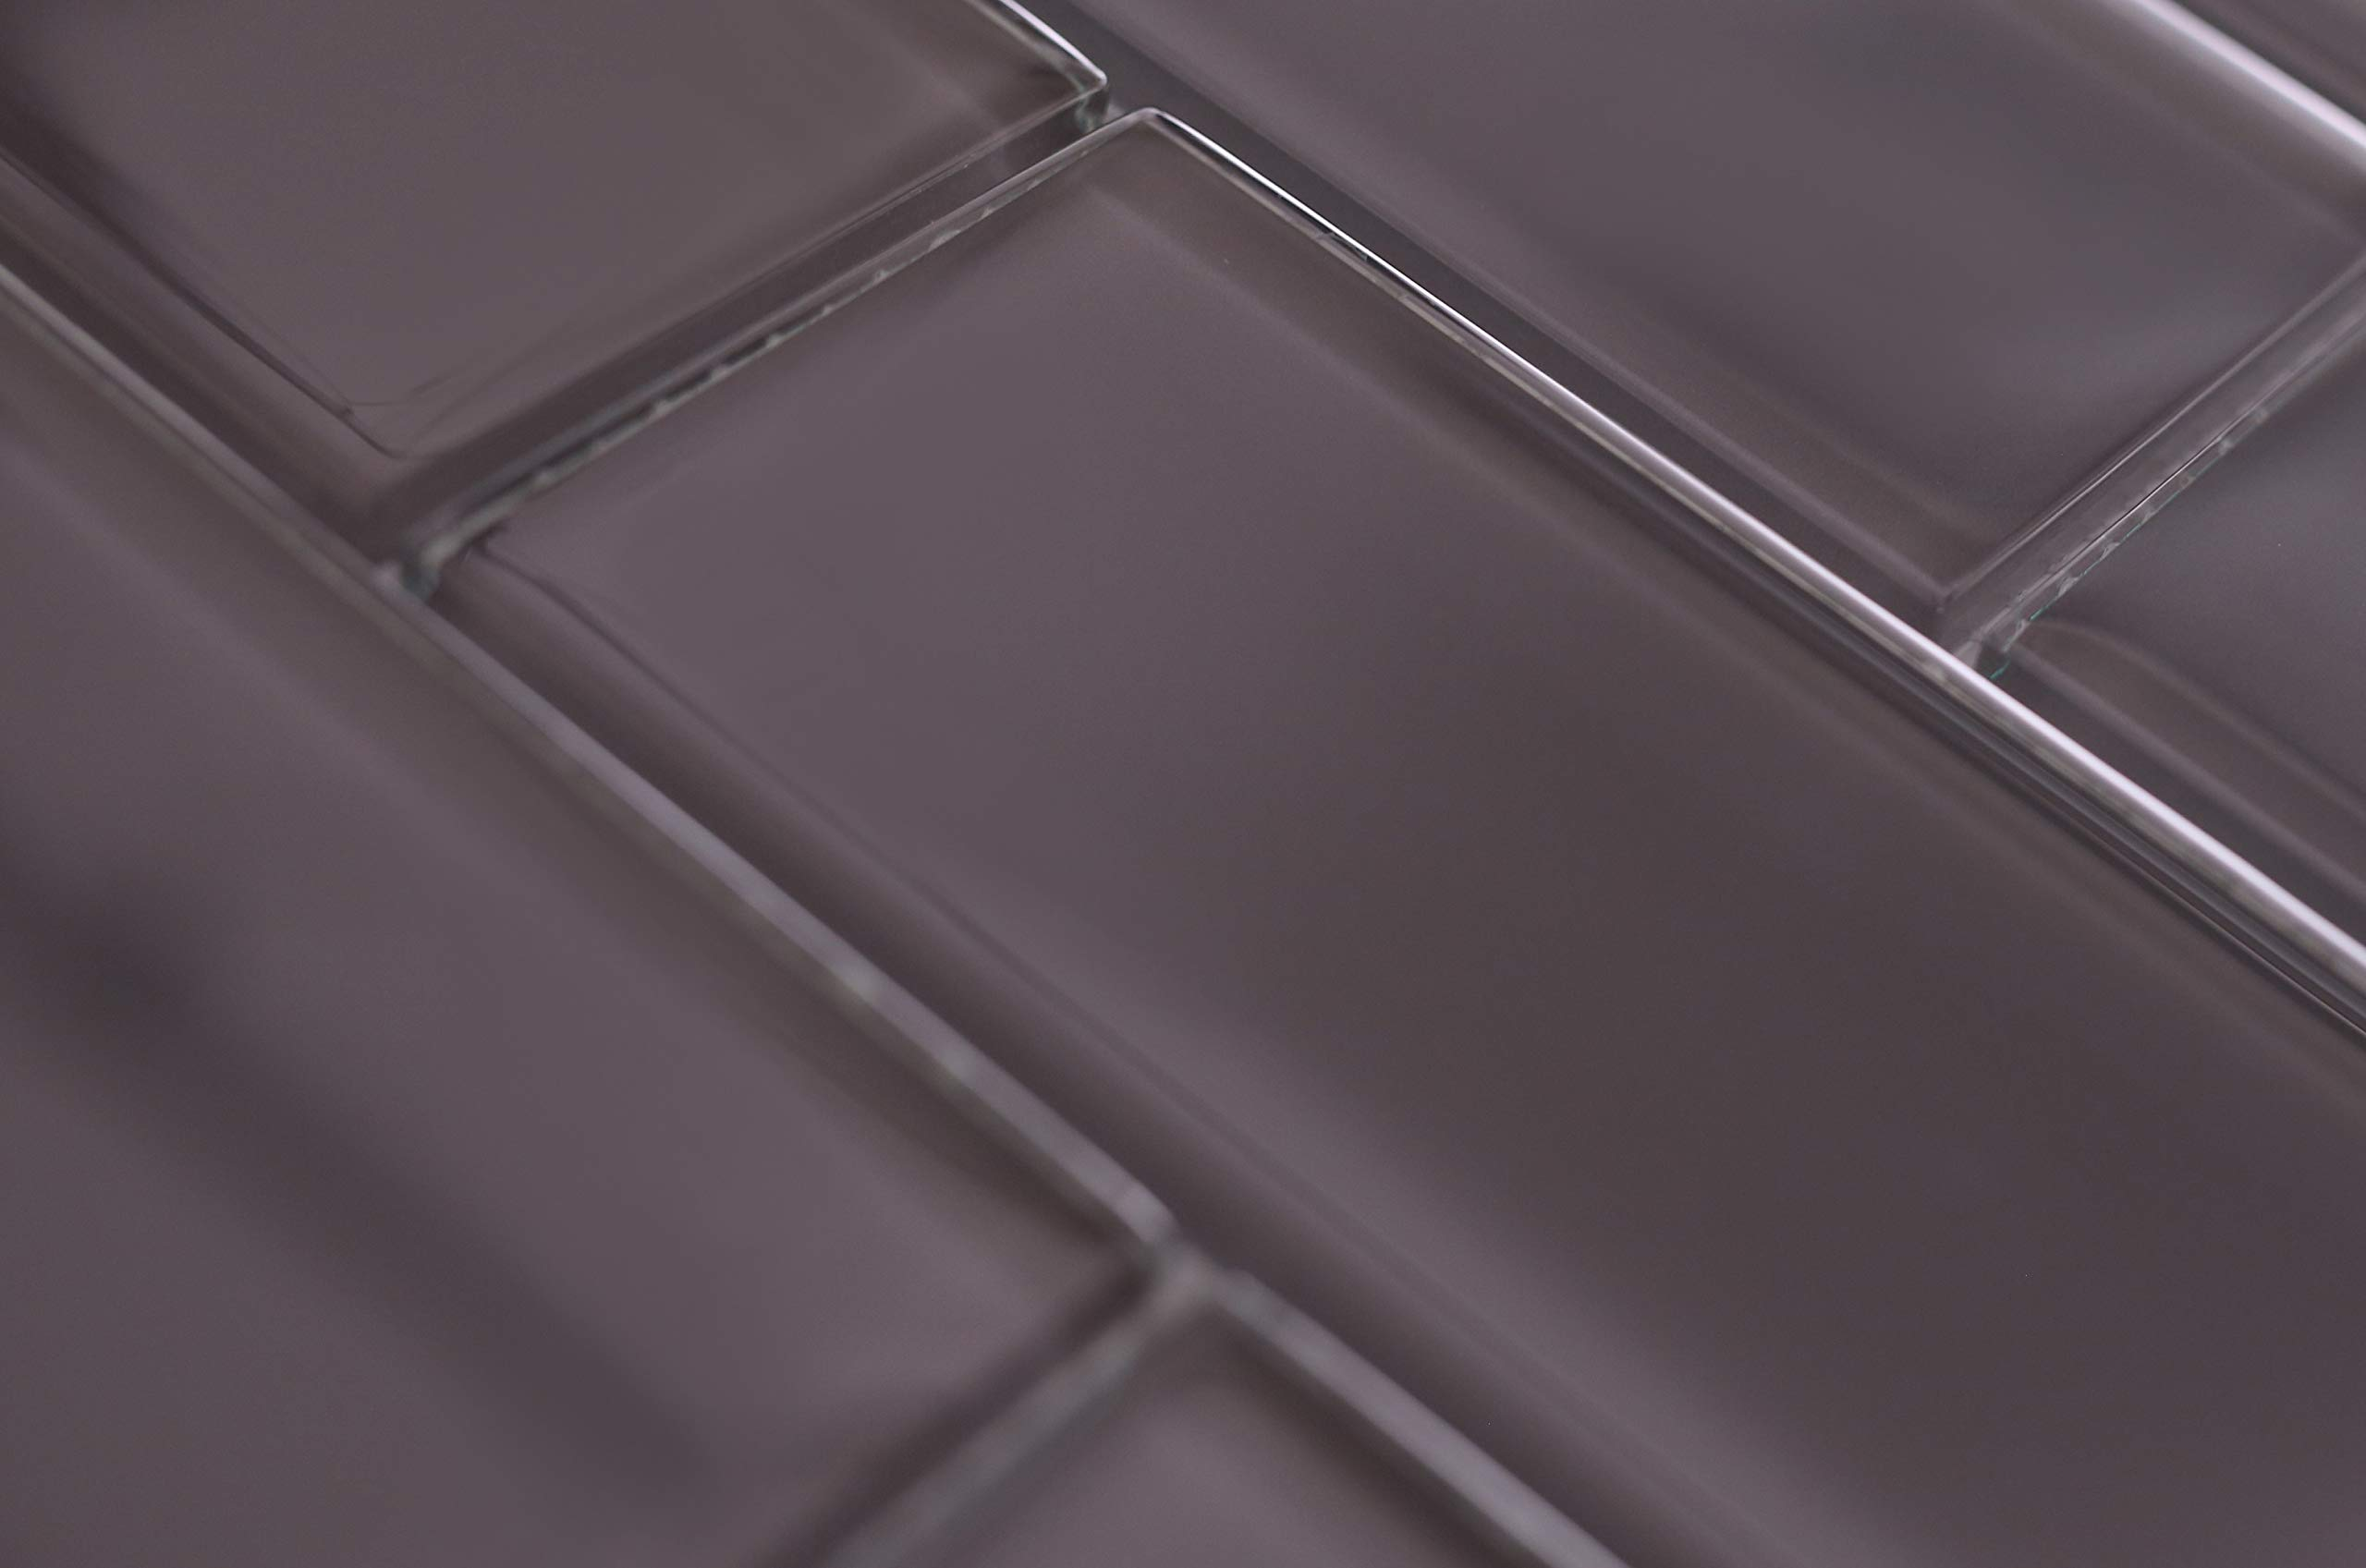 3'' x 6'' Subway Tyle Dark Gray Glass, Backsplash, Mesh-Mounted Tile for Kitchen & Bathroom - 12 in x 12 in x 8mm (5 Square Feet)